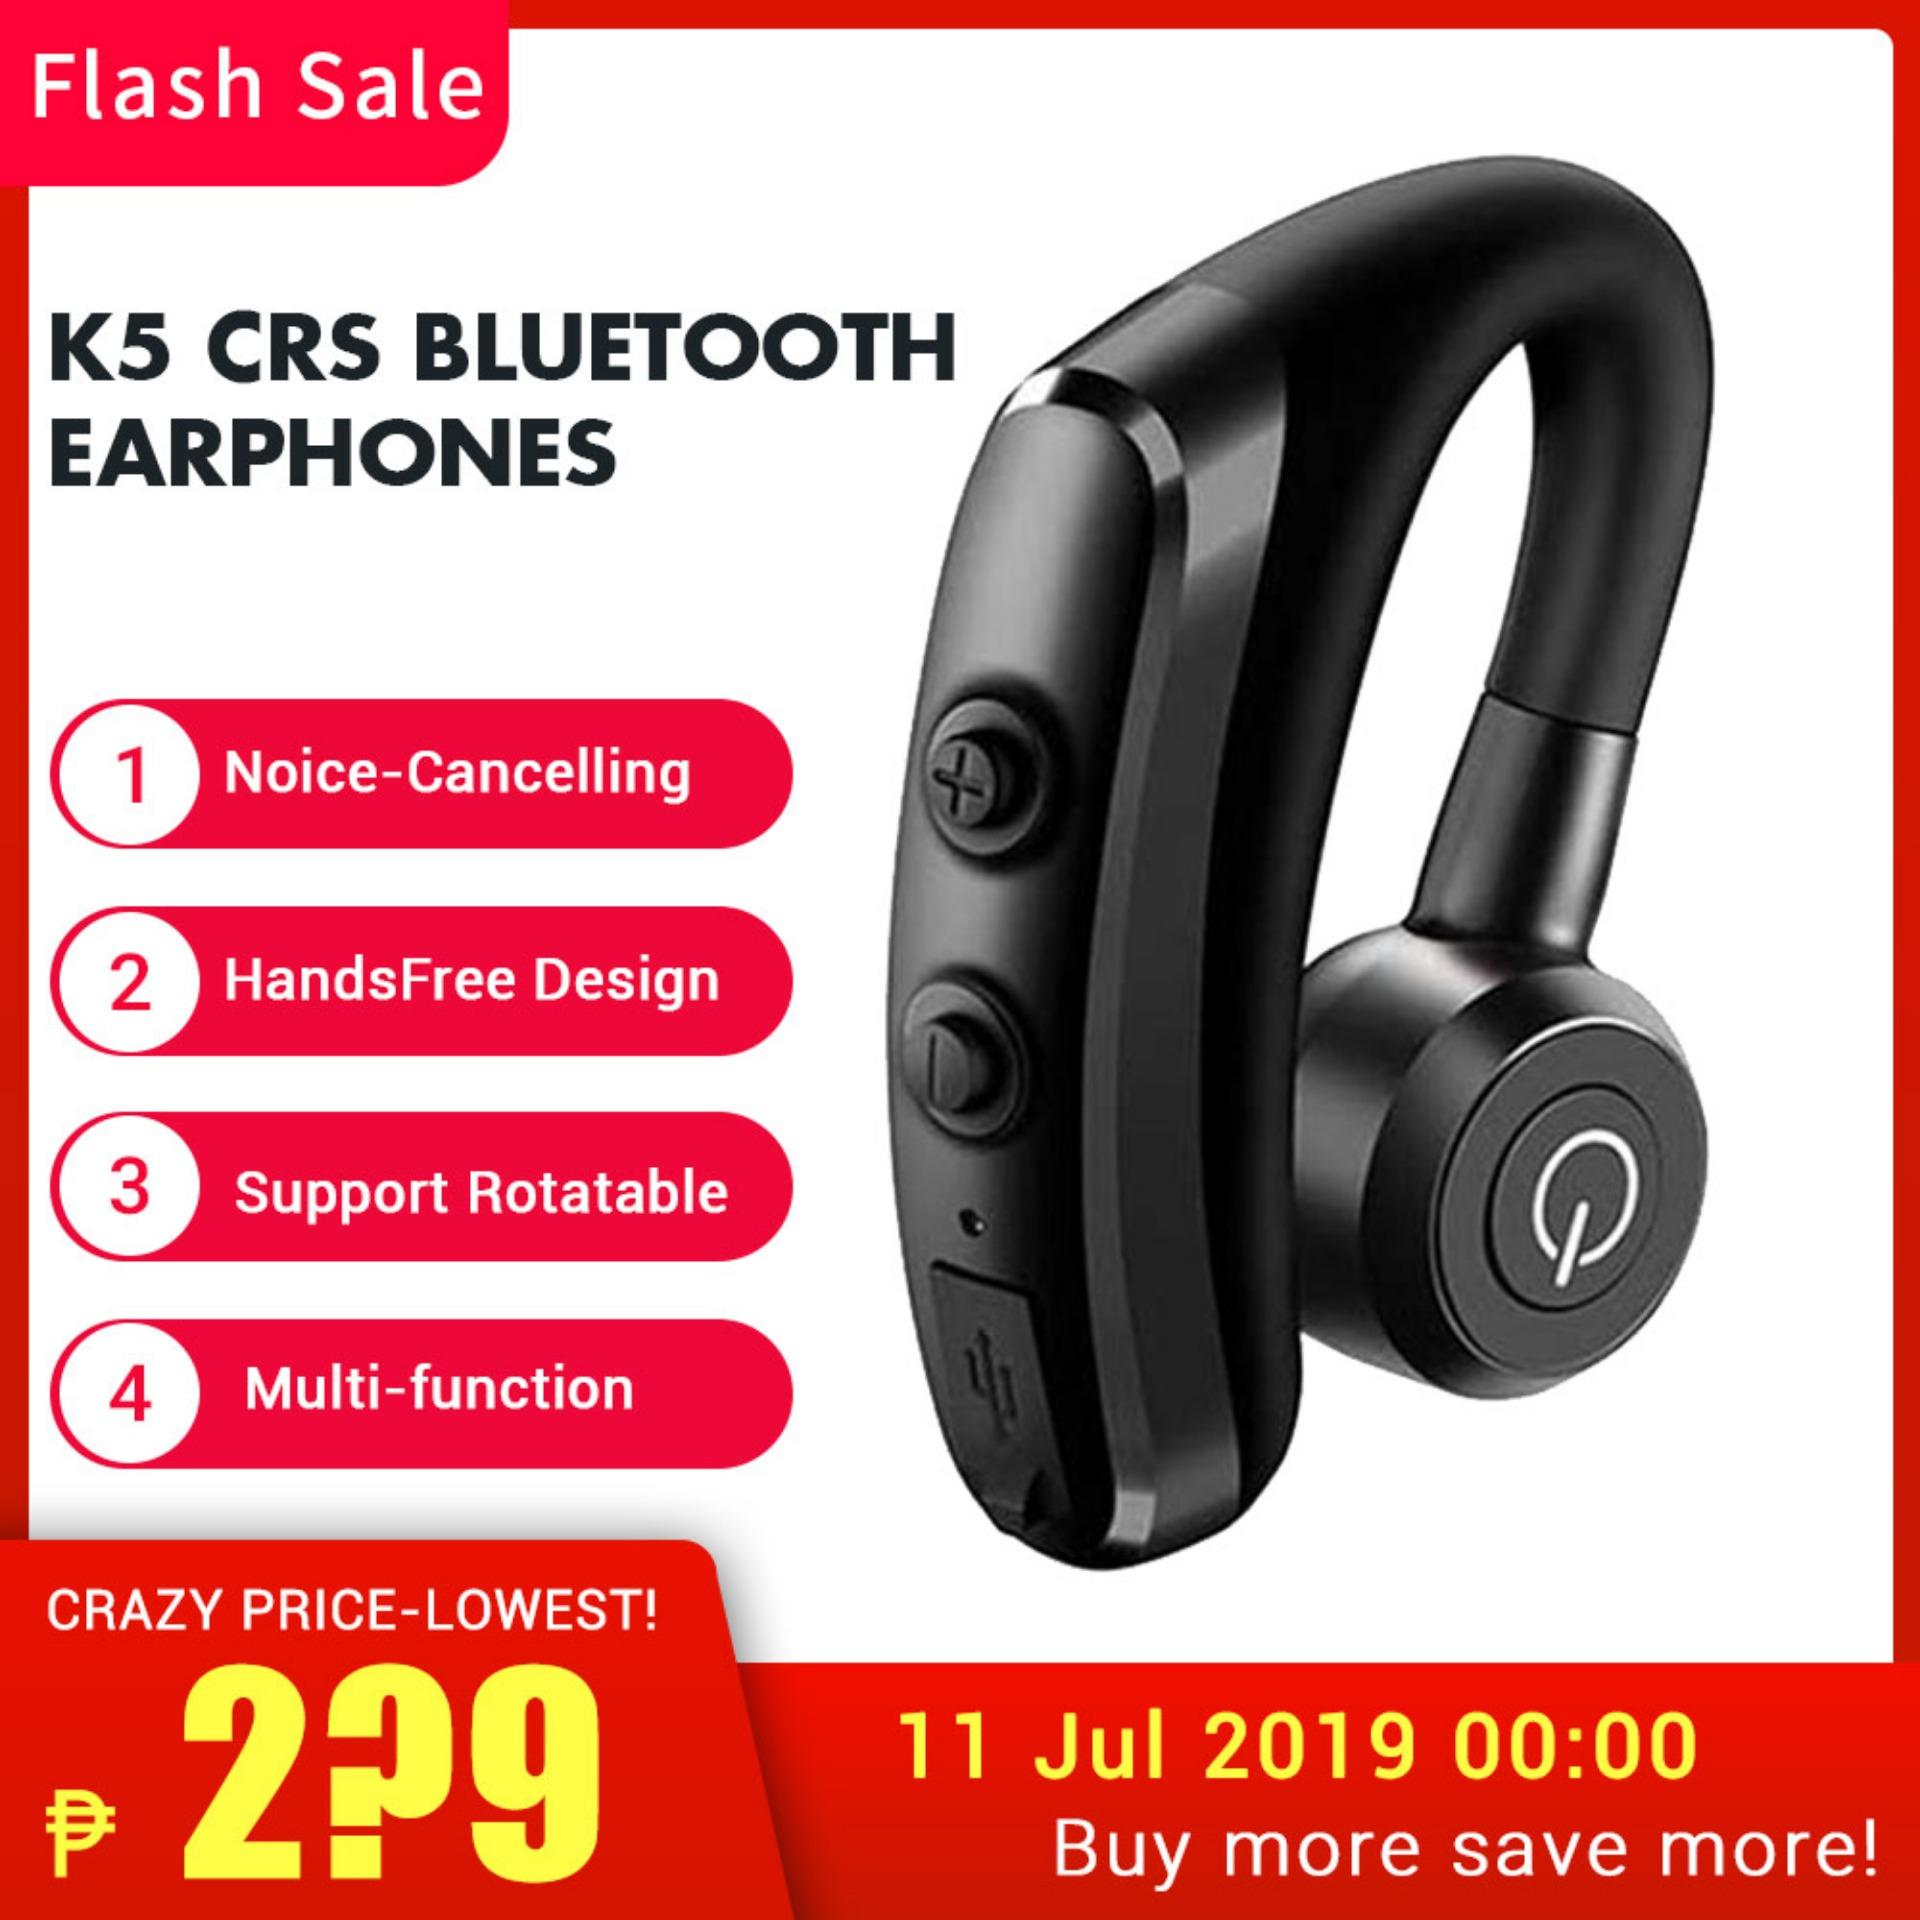 hight resolution of buyinbulk k5 csr bluetooth earphone earhook headphones k5 noice cancel bluetooth headset rotatable handsfree